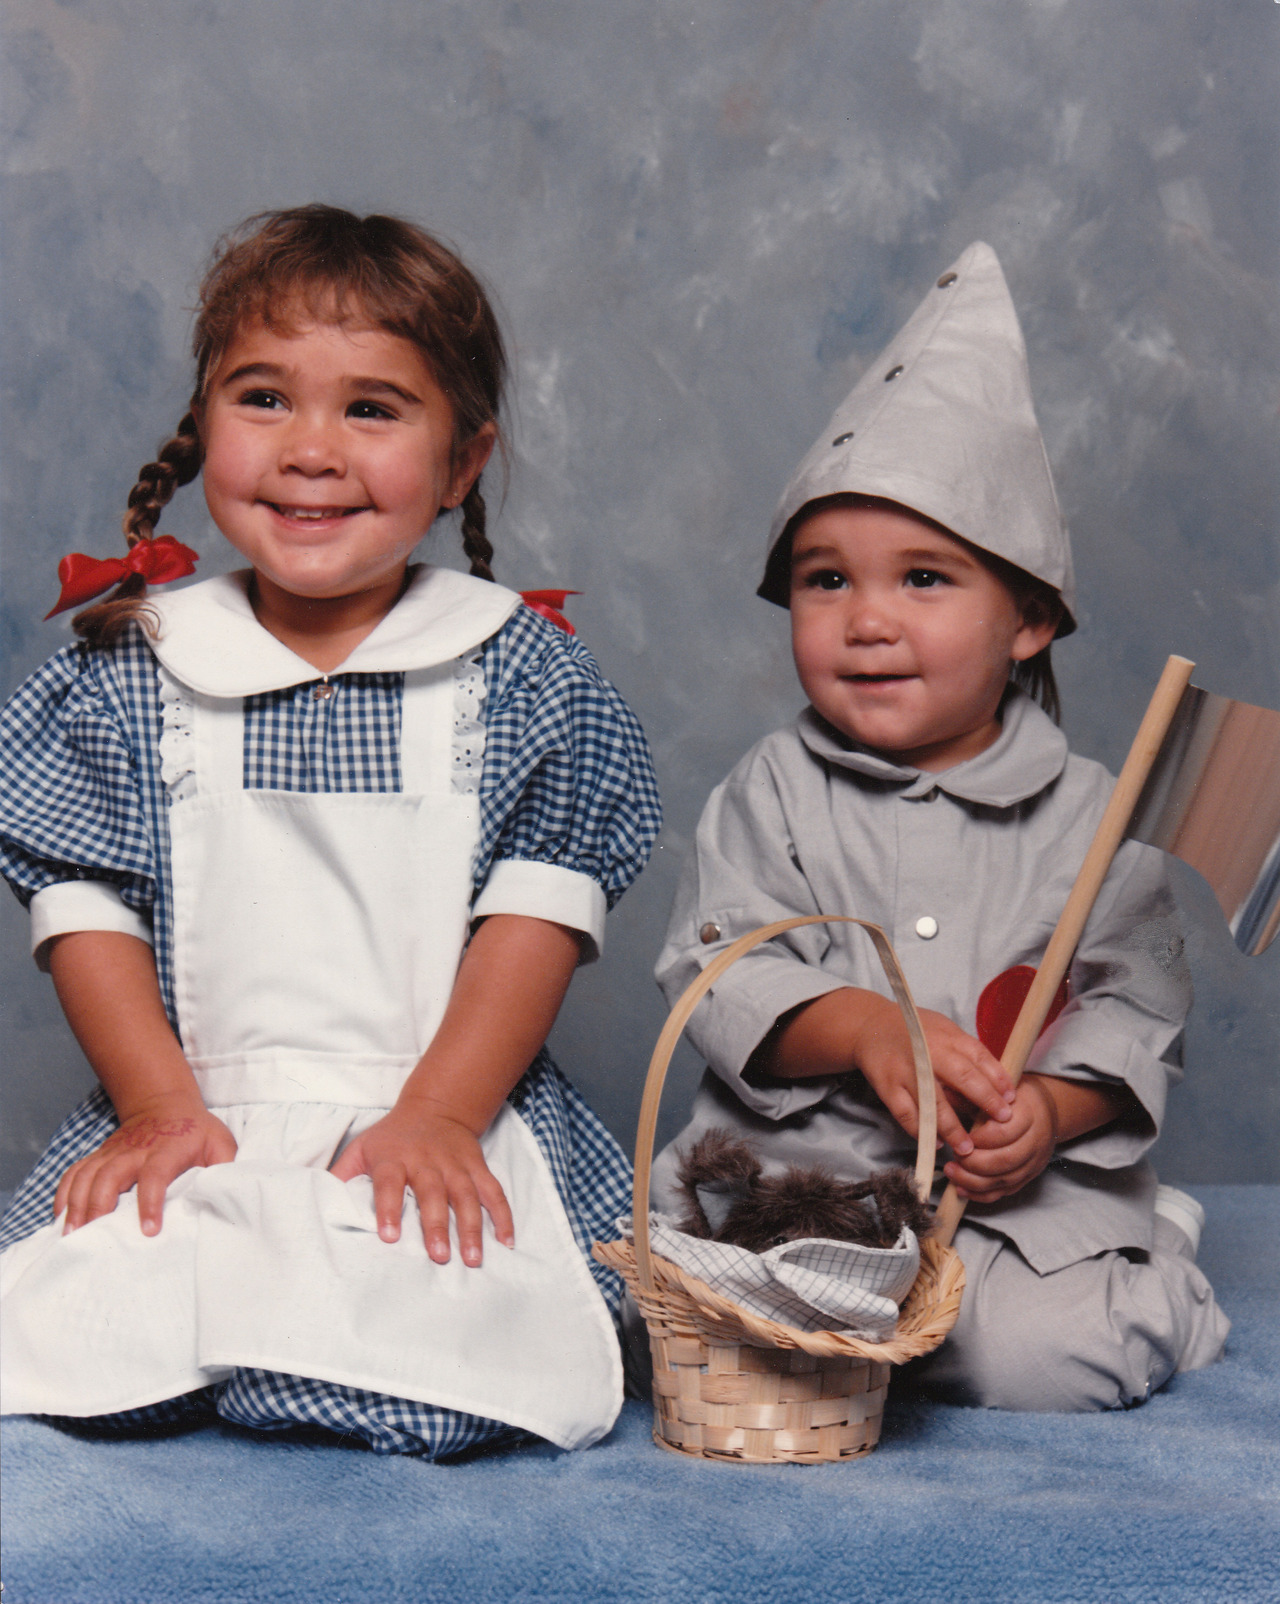 """I took my children (dressed as Dorothy and The Tin Man) to a local JCPenney portrait studio (circa 1989) and I was surprised when the young woman photographer asked what they were supposed to be. When I explained, I was even more shocked when she claimed to have never before heard of The Wizard of Oz."" -- Sonja Brouwers"